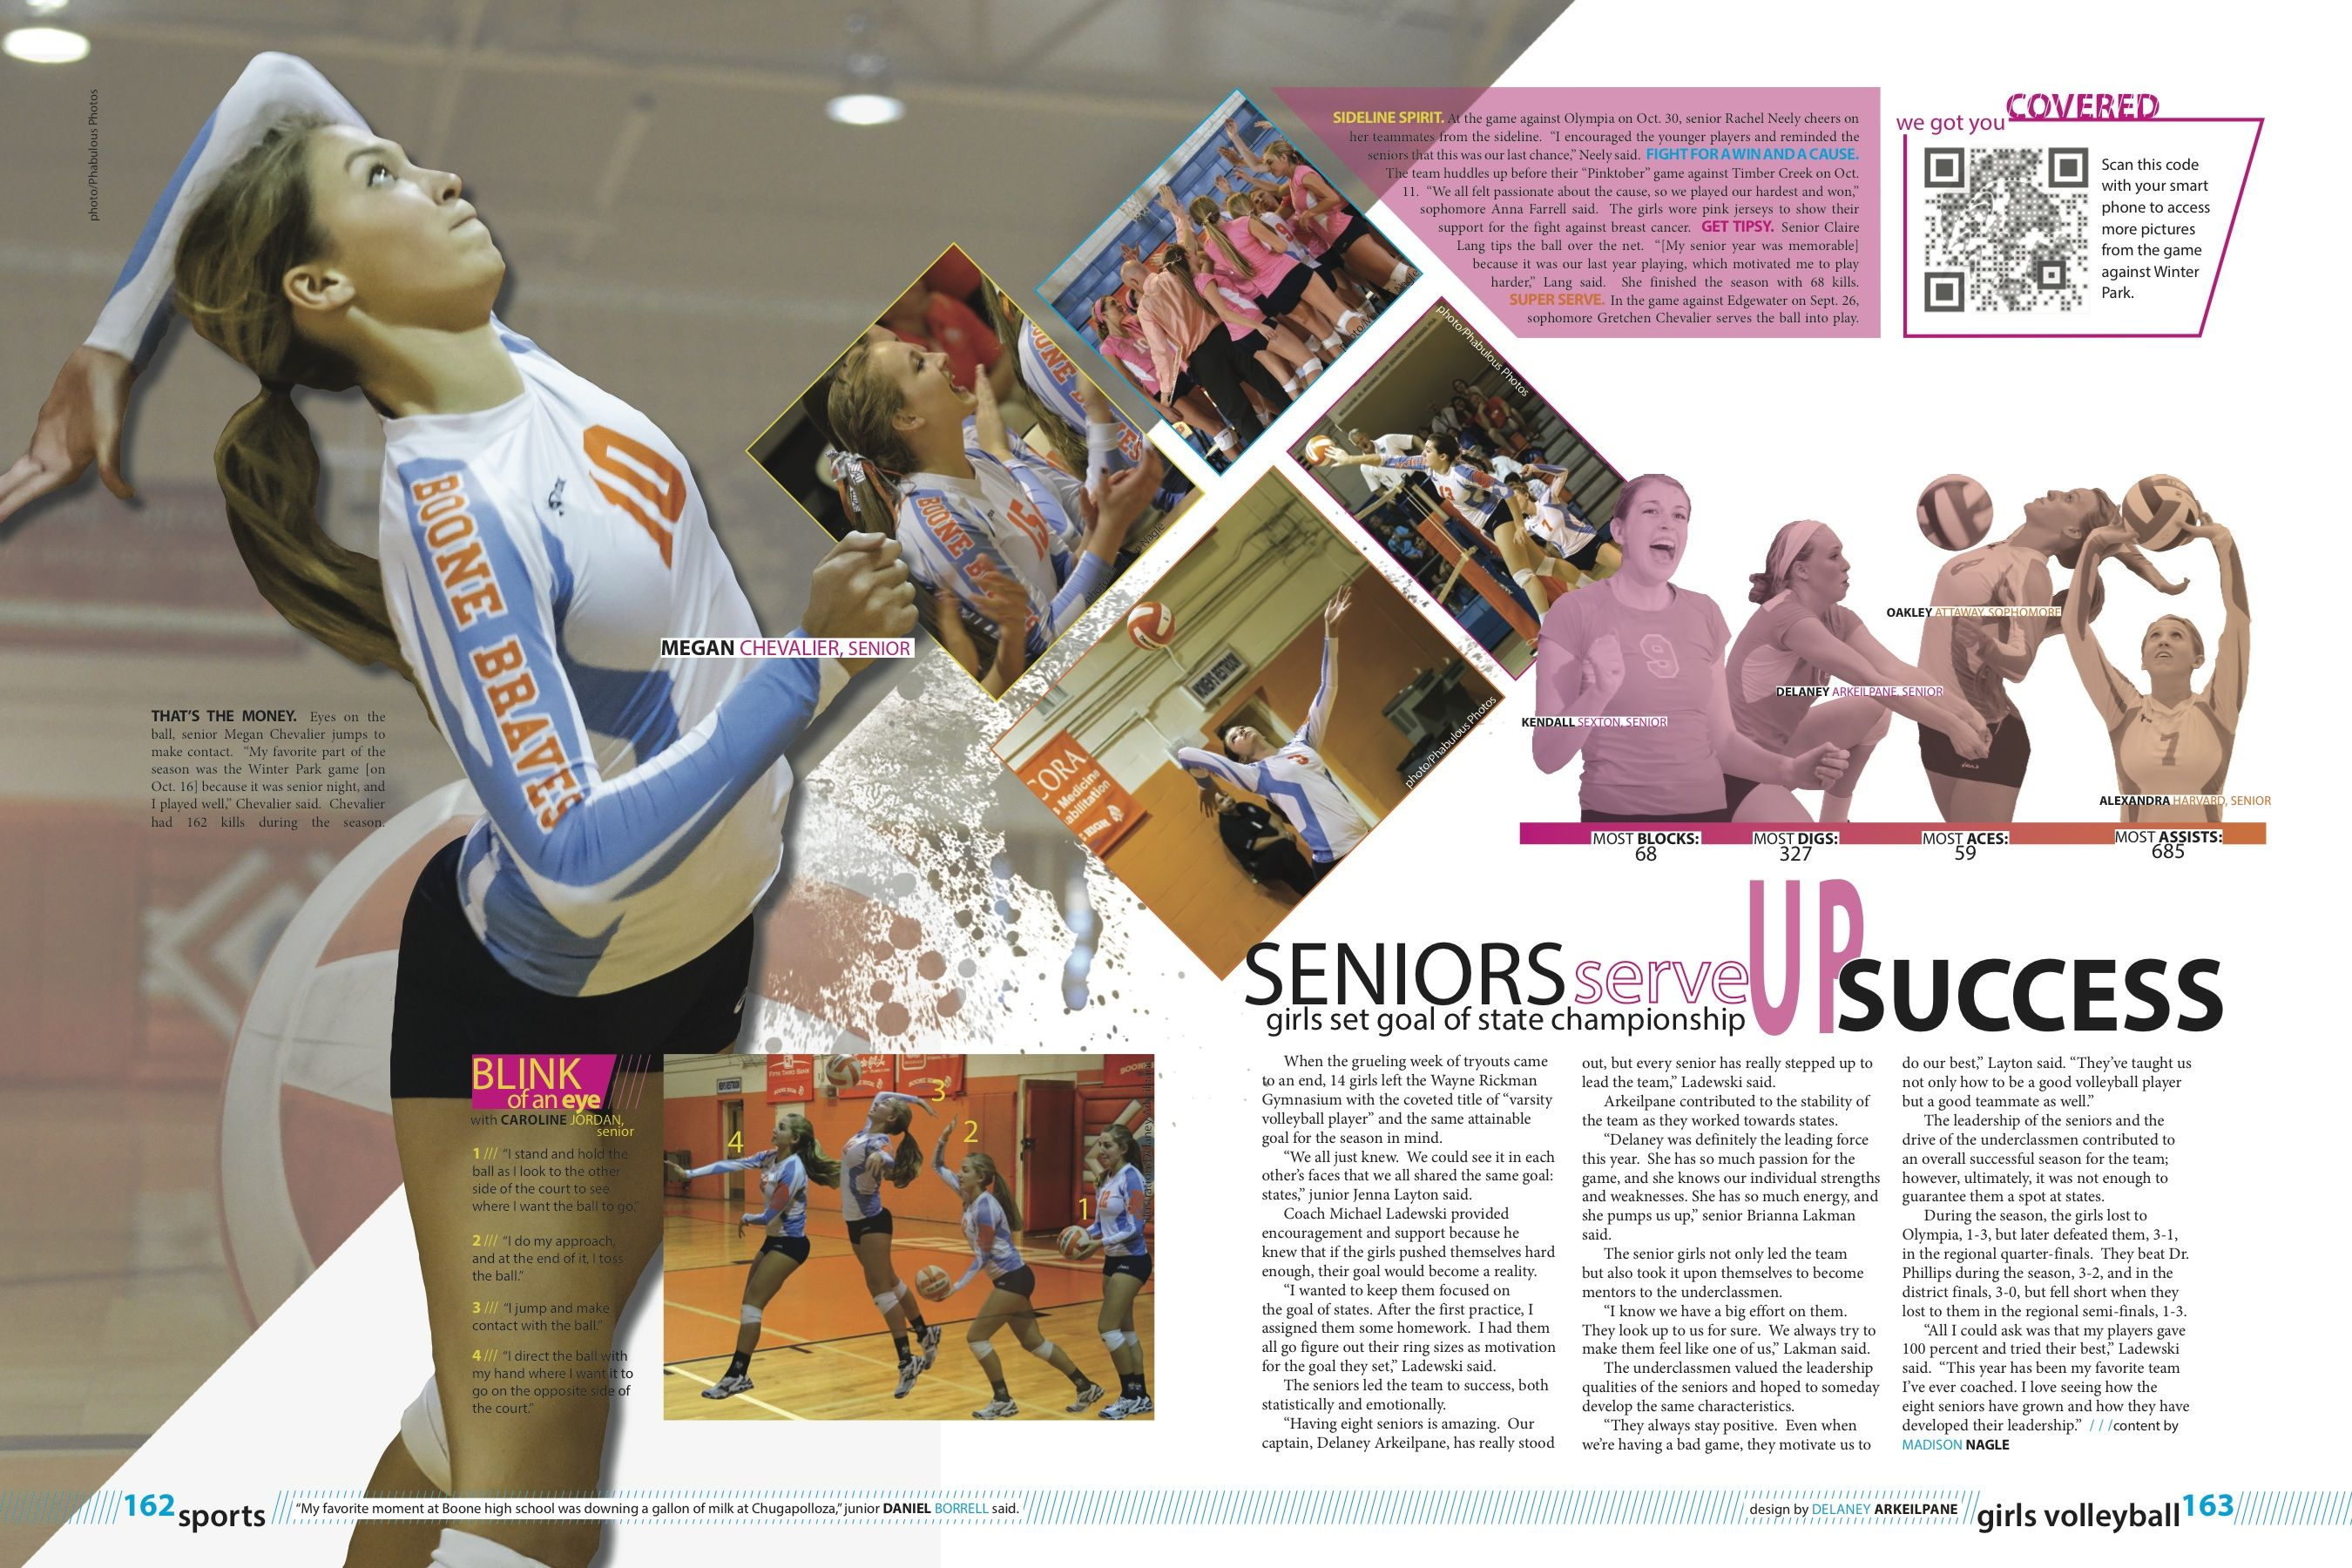 Pin on Page Layout Inspiration  |Academic Spreads For Yearbook Ideas